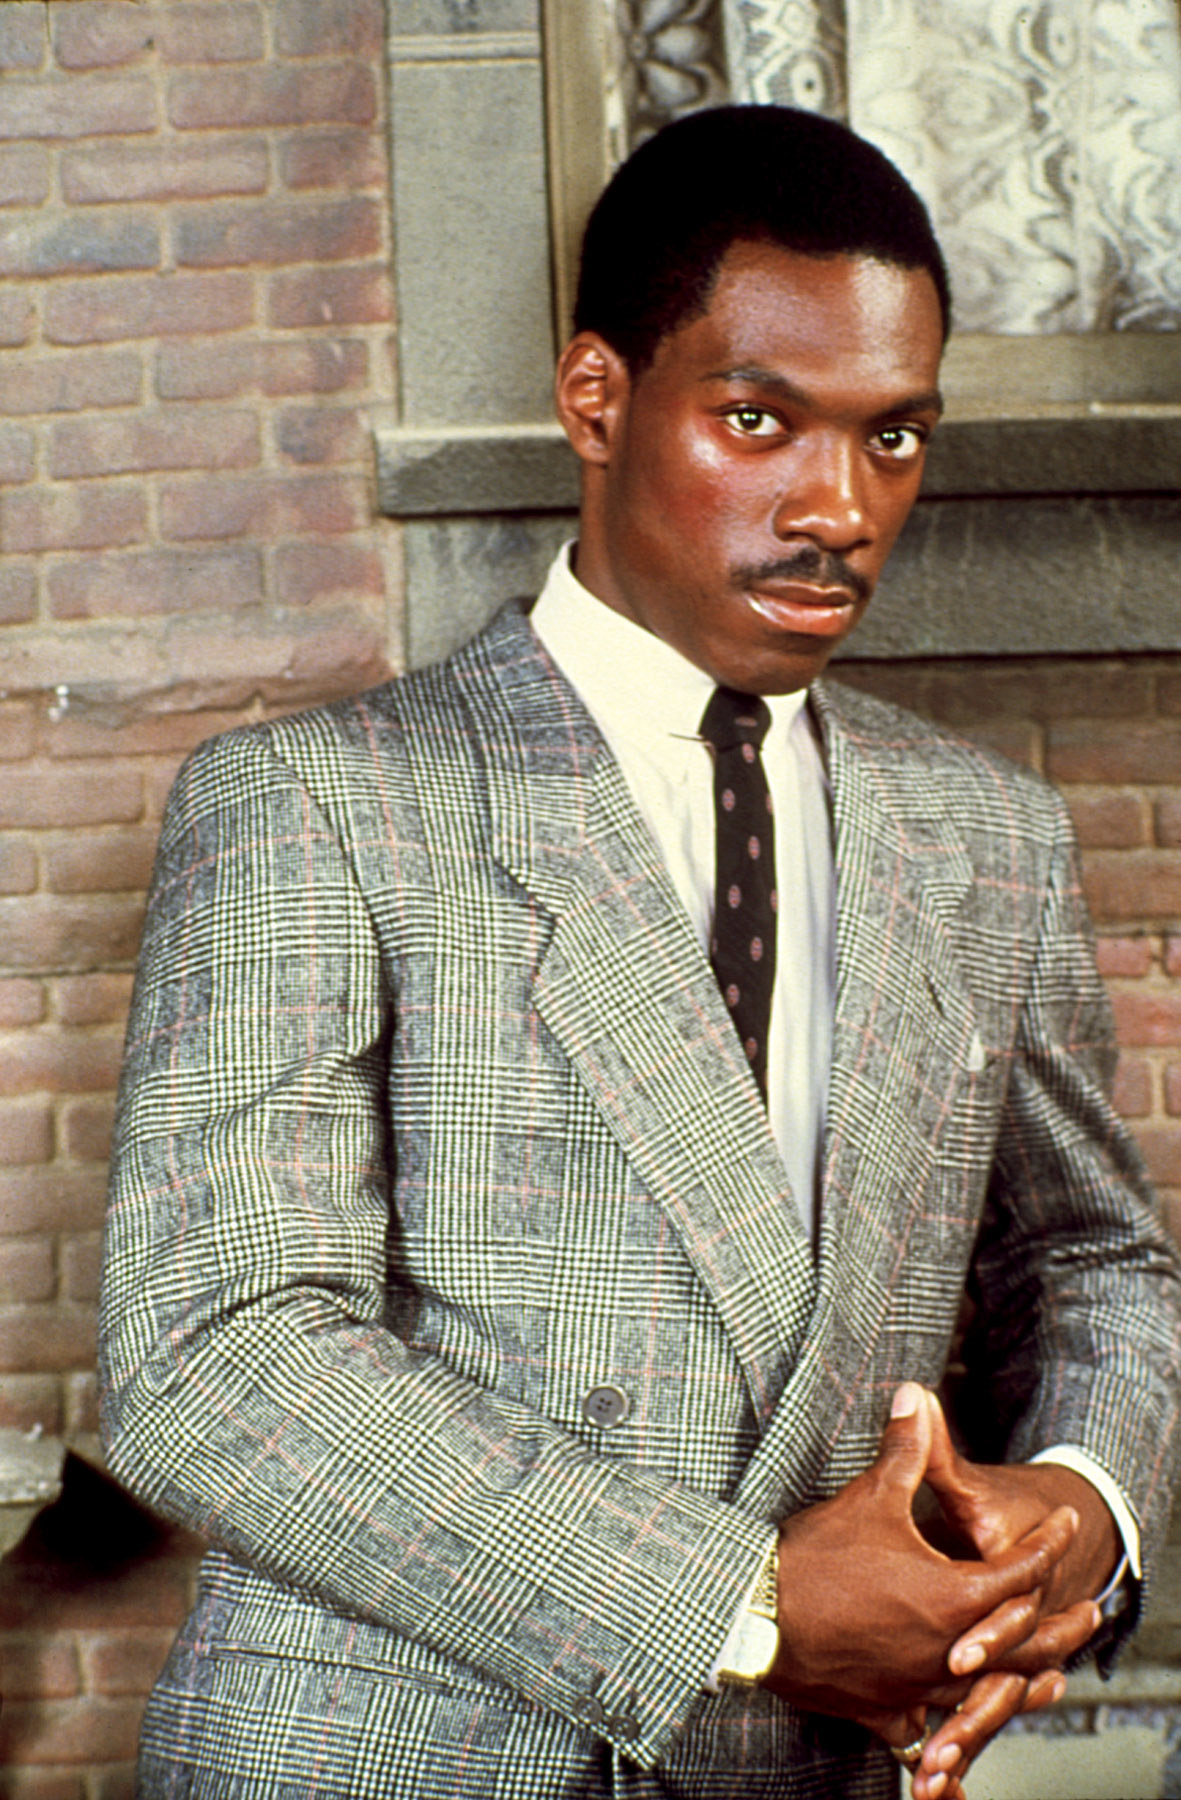 Eddie Murphy in a suit, leaning against a brick wall